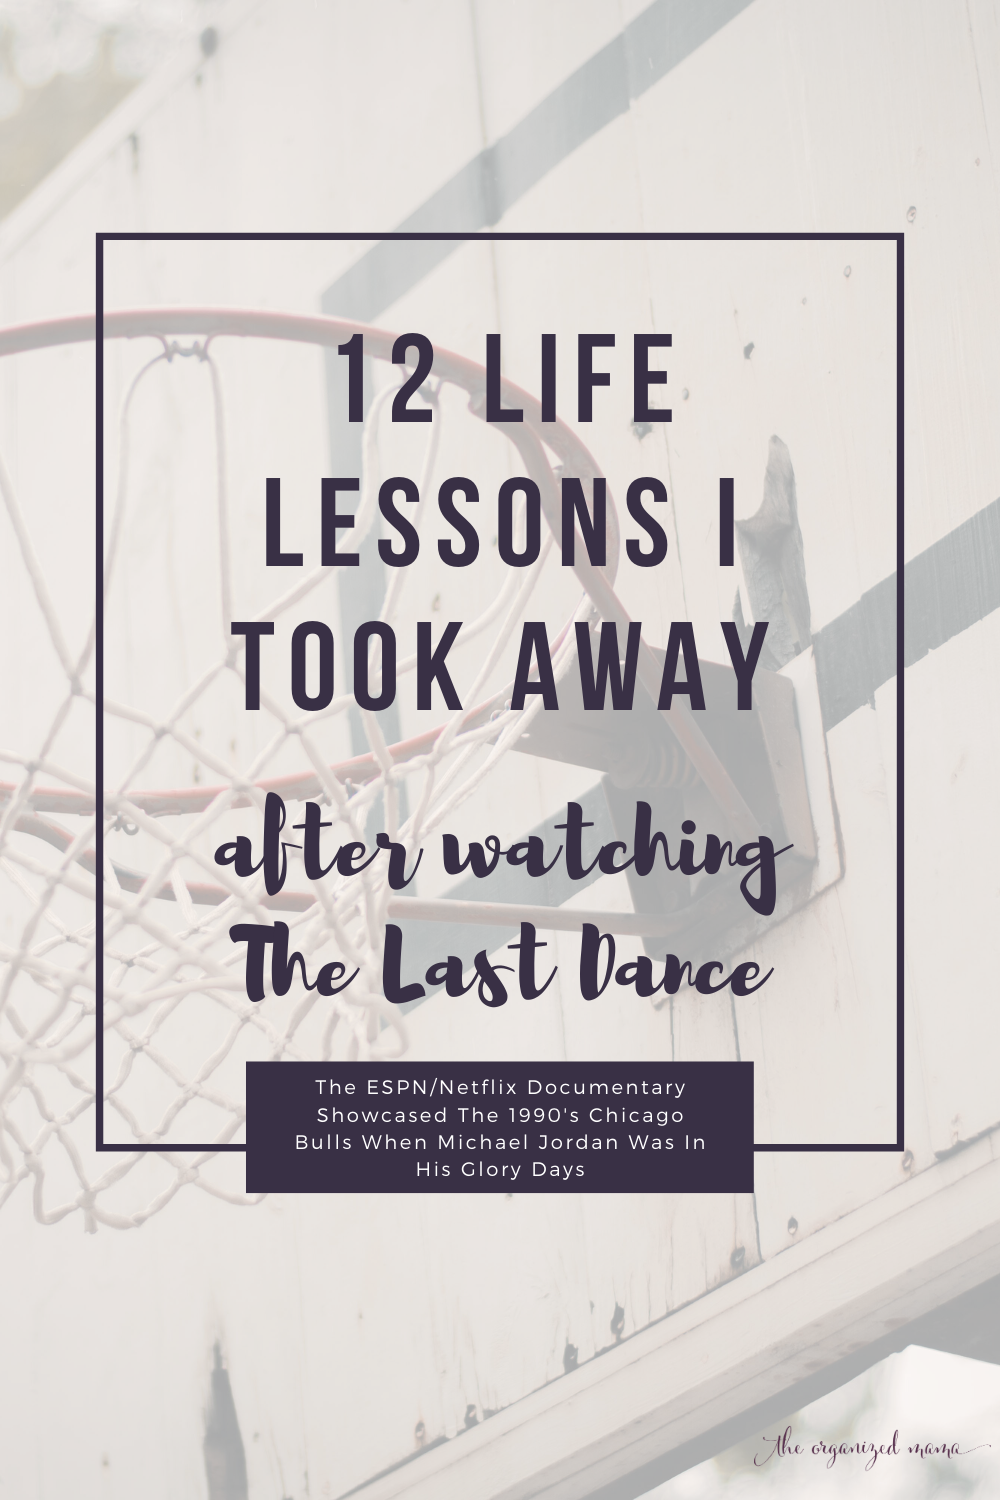 12 Life Lessons I took away after watching The Last Dance documentary of the Chicago Bulls Michael Jordan days